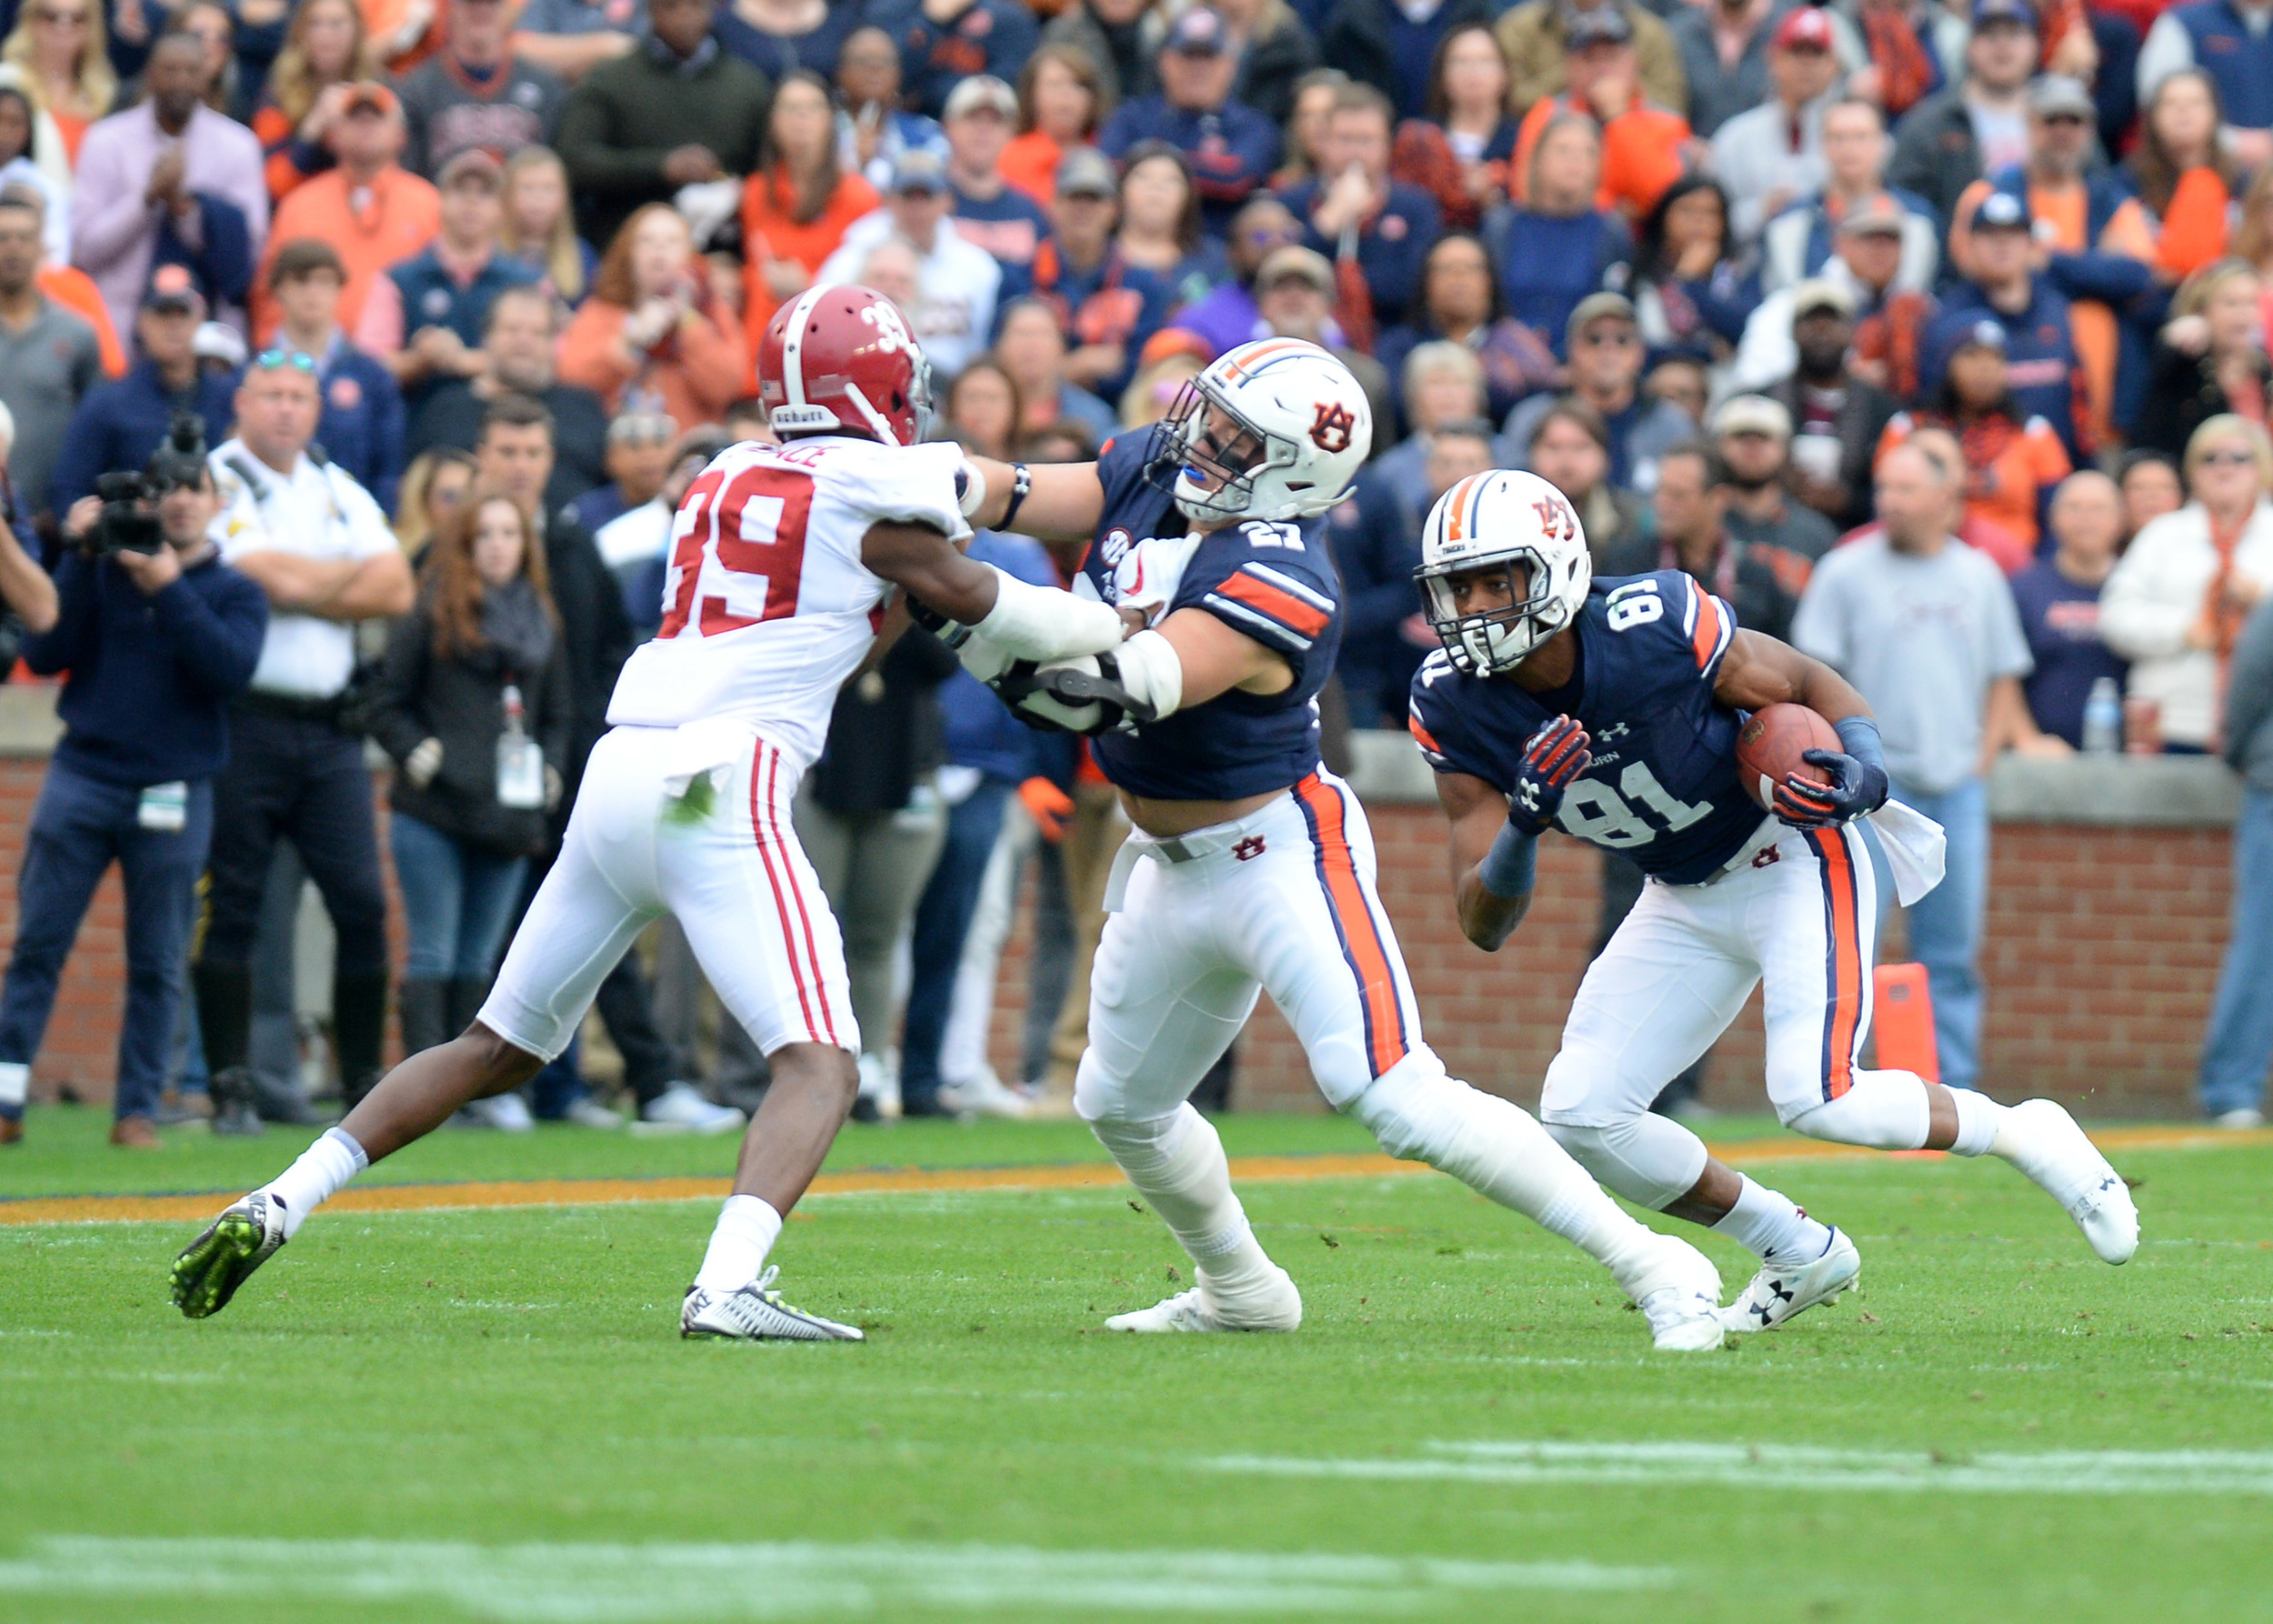 Auburn Tigers wide receiver Darius Slayton (81) gets a block from fullback Chandler Cox (27) in the first half of the NCAA football game between the Alabama Crimson Tide and the Auburn Tigers on Nov. 25, 2017, at Jordan-Hare Stadium in Auburn, Ala. (Photo by Jeff Johnsey)